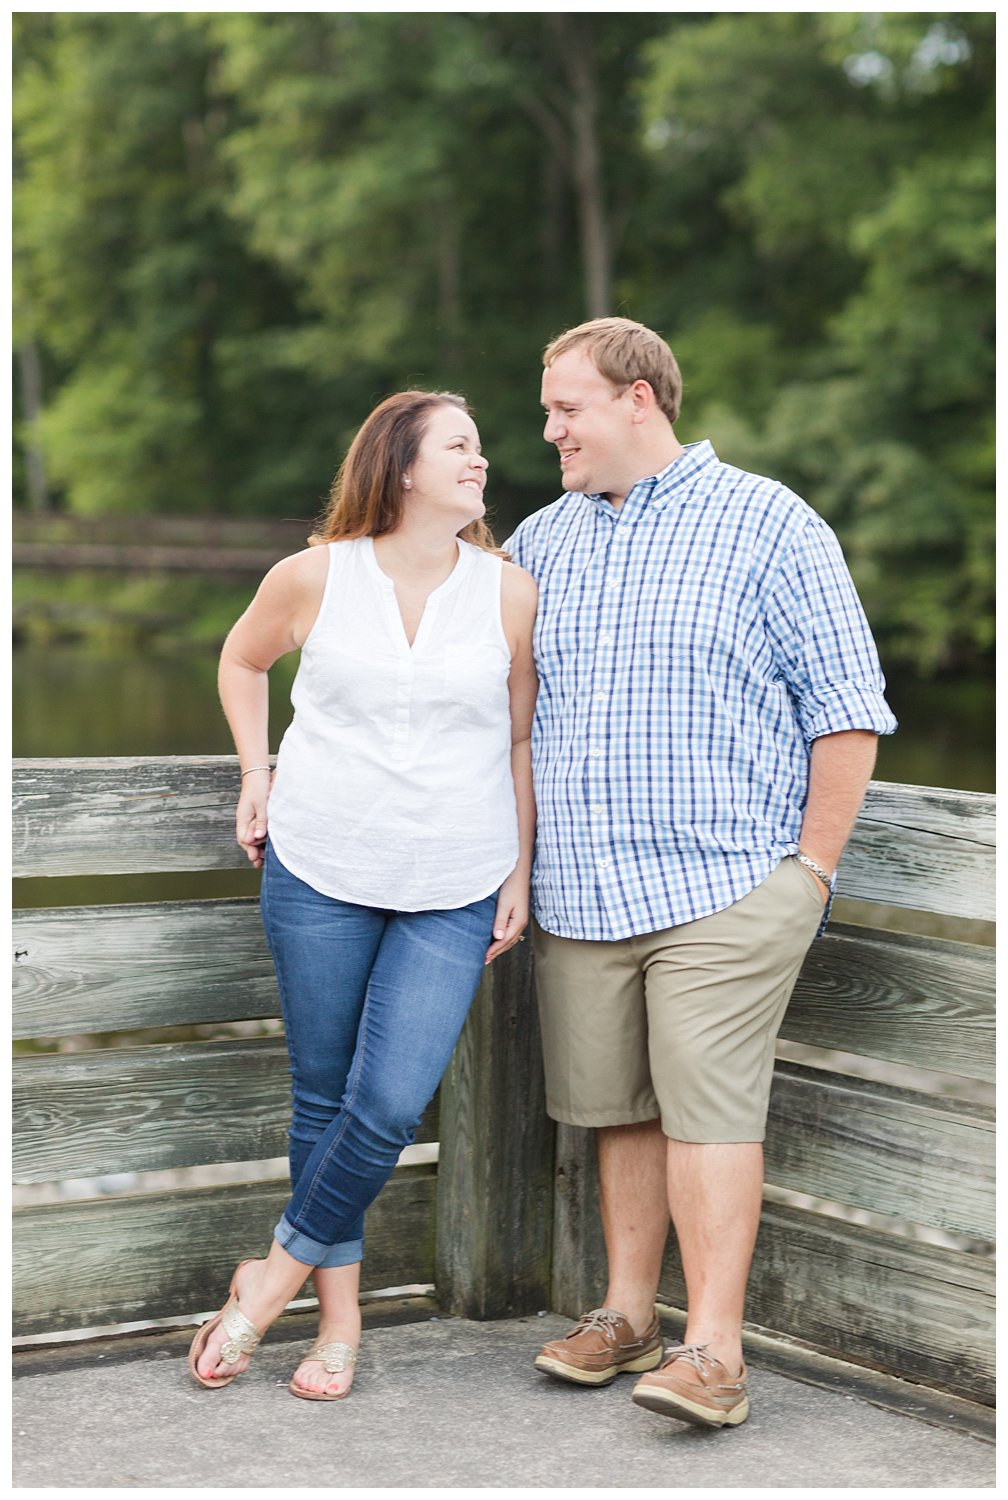 elovephotos old town alexandria engagement session_0796.jpg